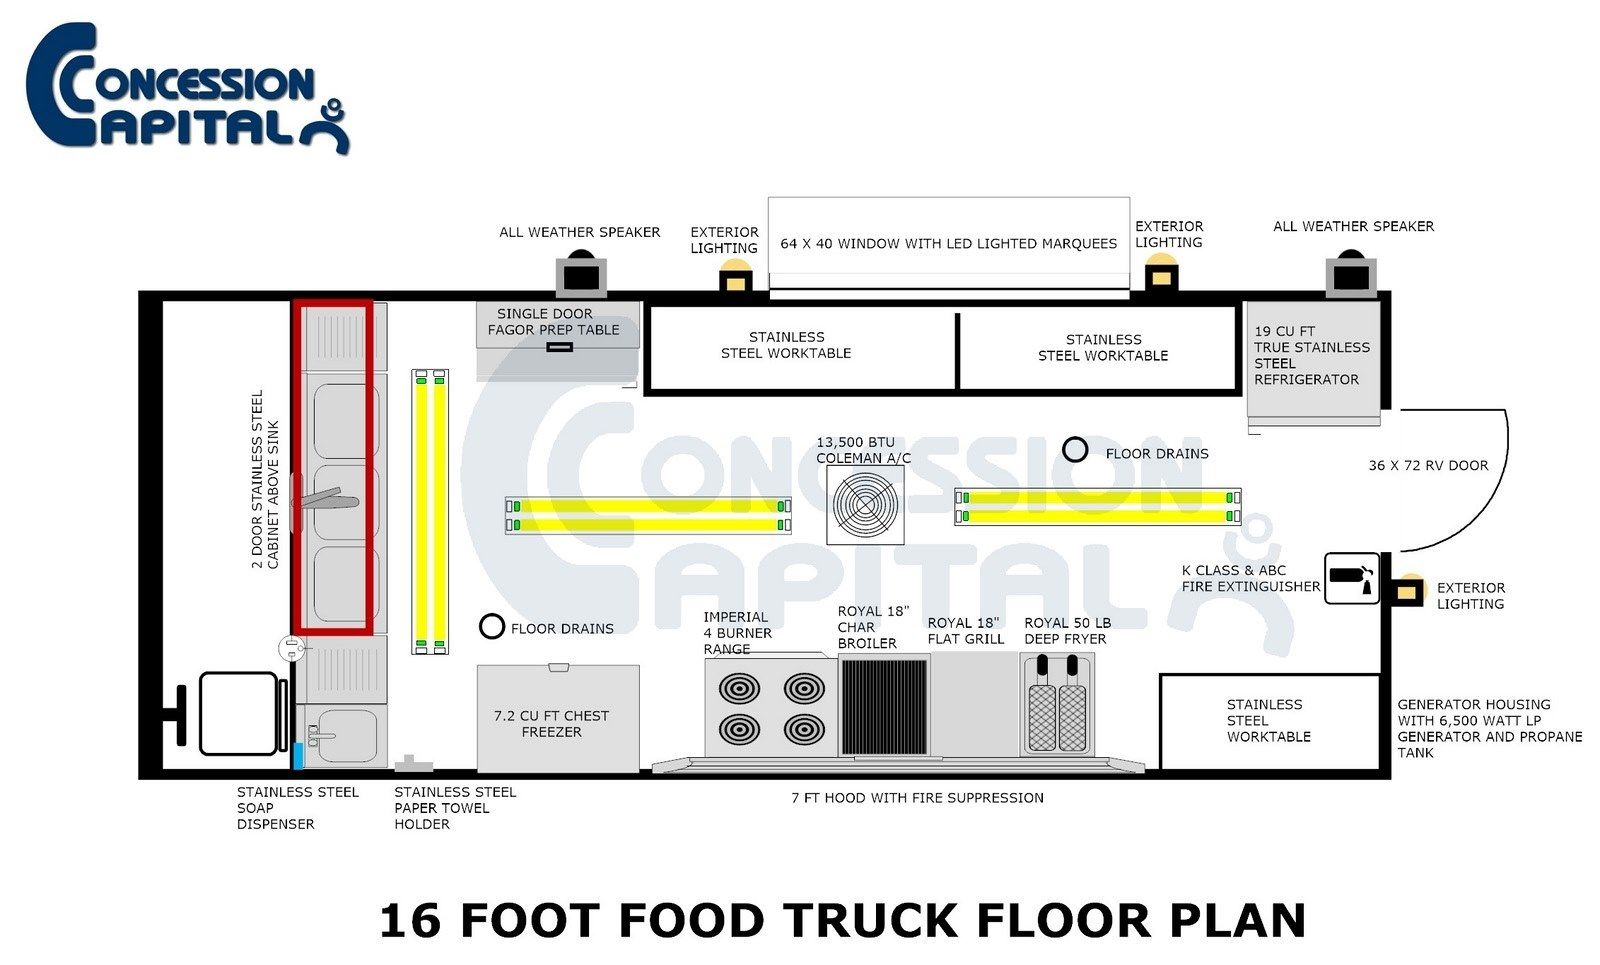 18 Foot Food Truck Floor Plan Floor plans, How to plan